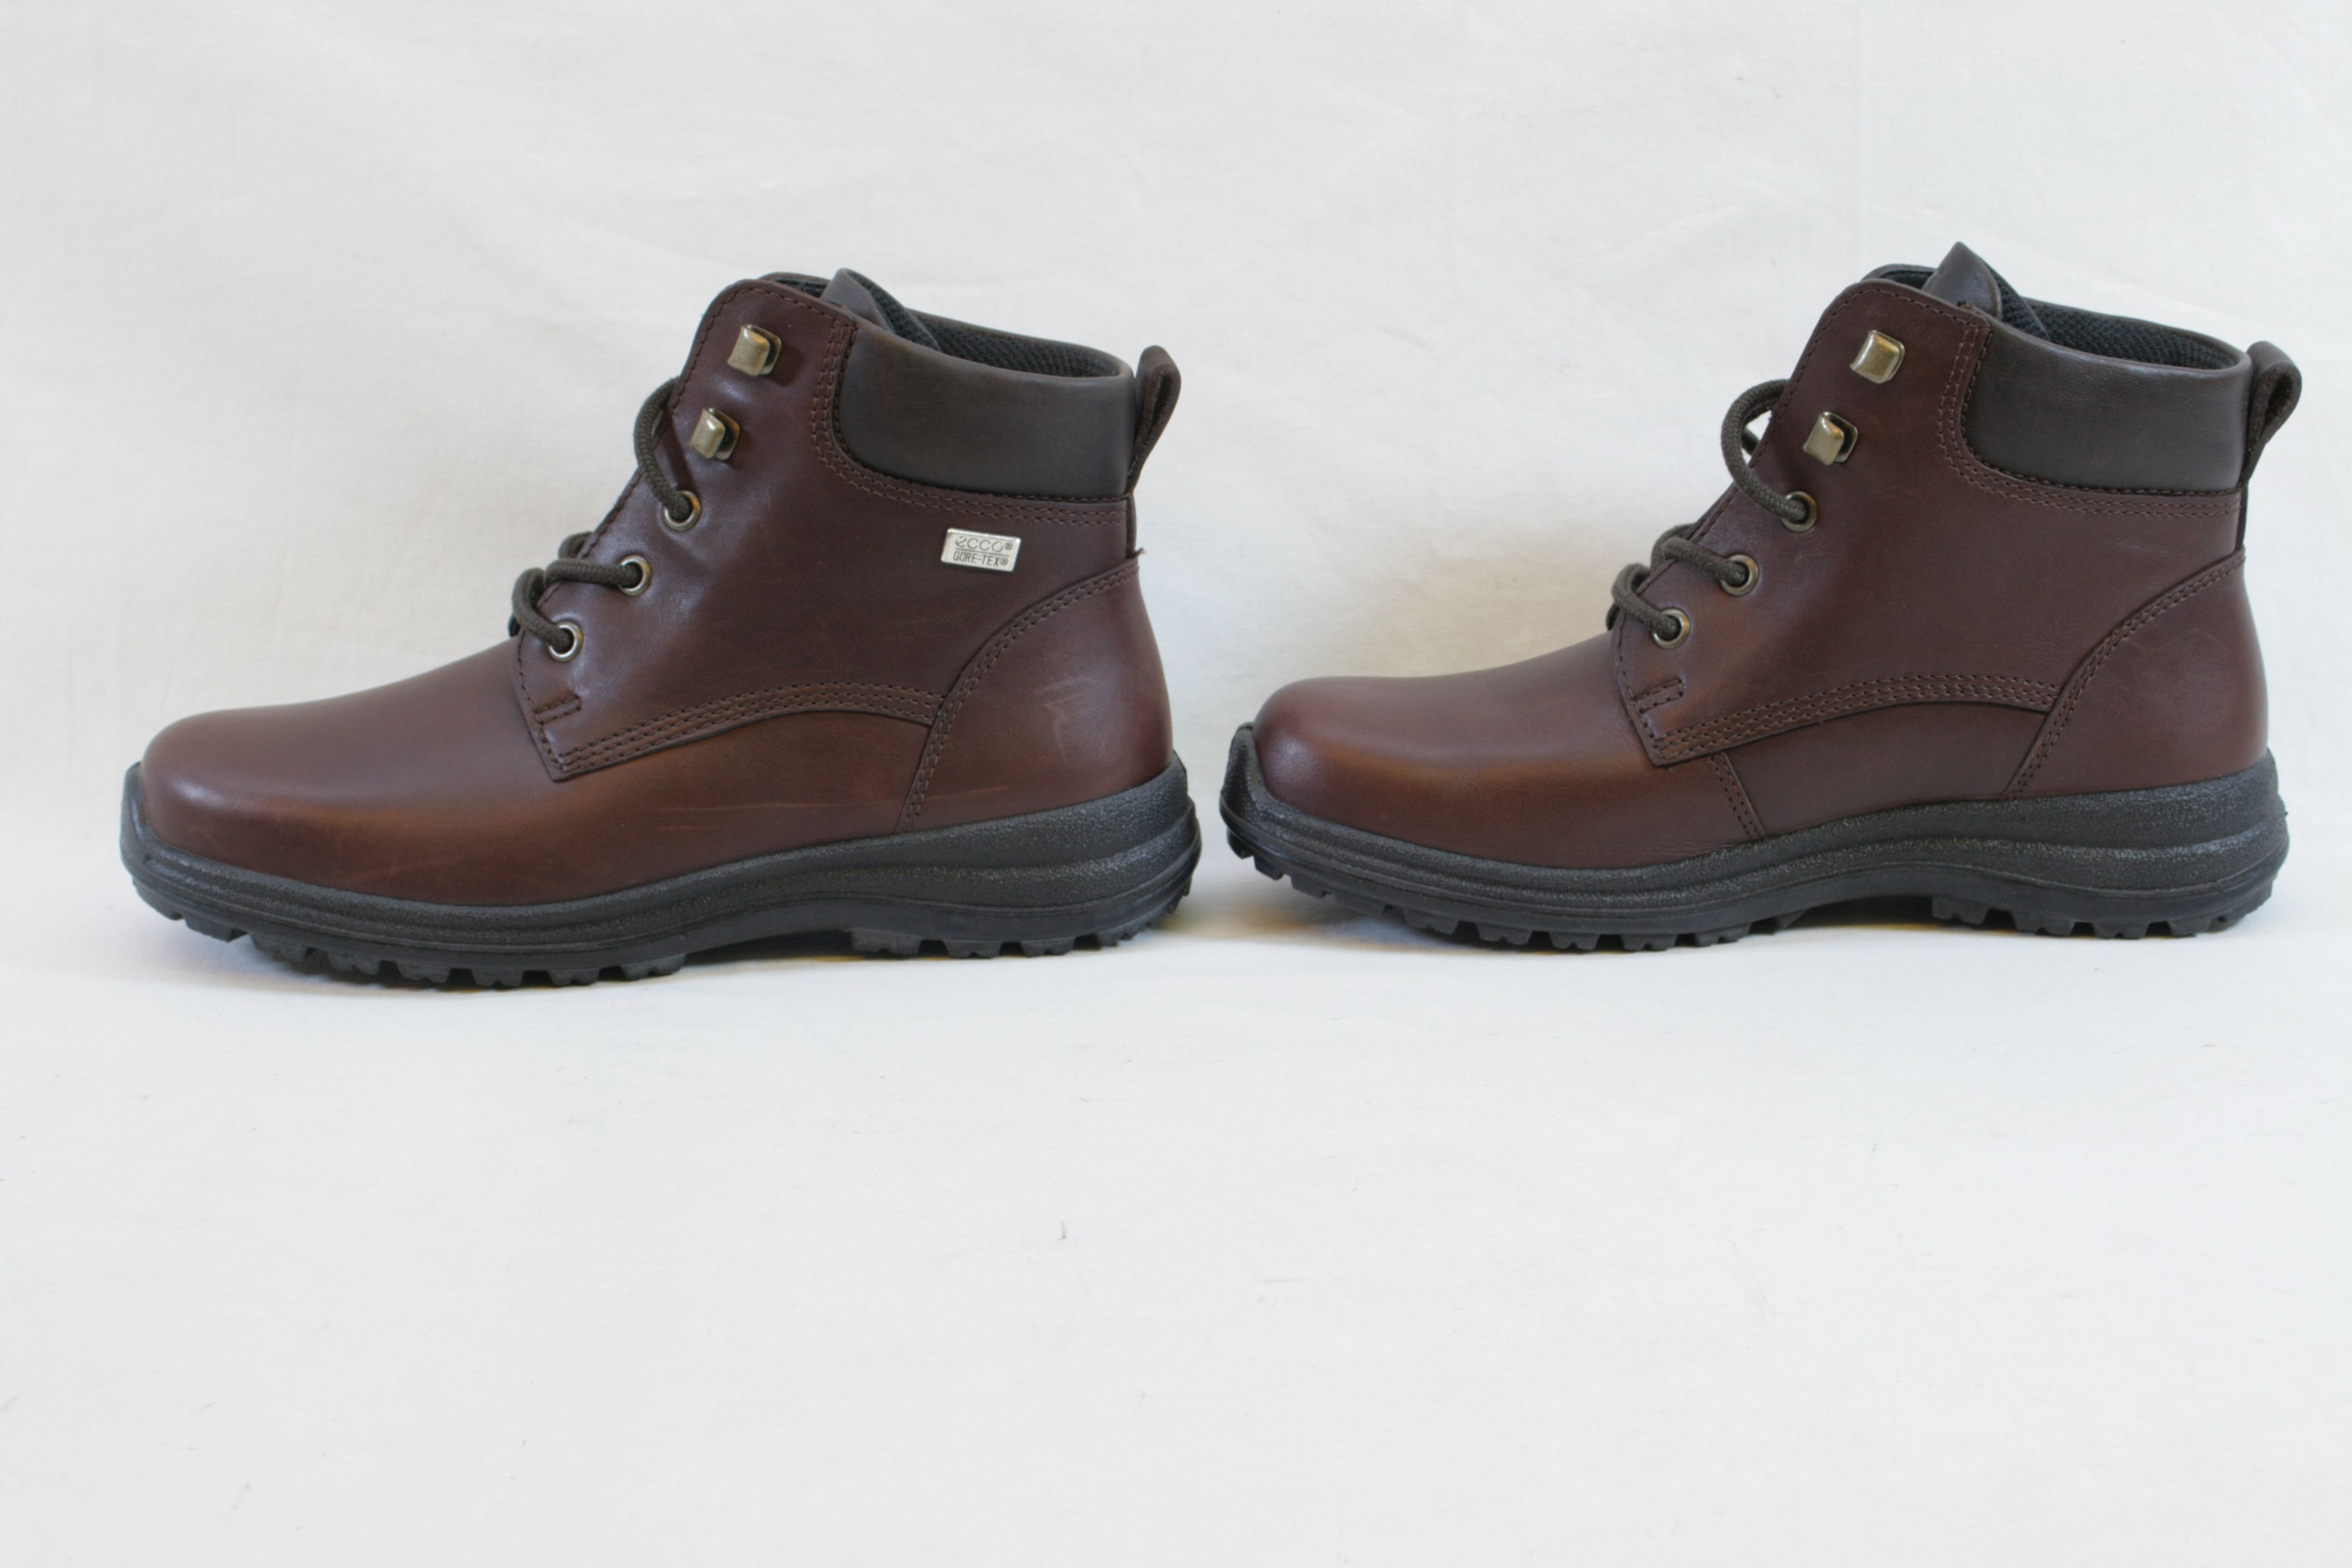 c8ca0176fdc Womens Ecco Gore-Tex Brown Leather Ankle Boots - Size UK 6 EU 39 5. Open  Full-Size Image